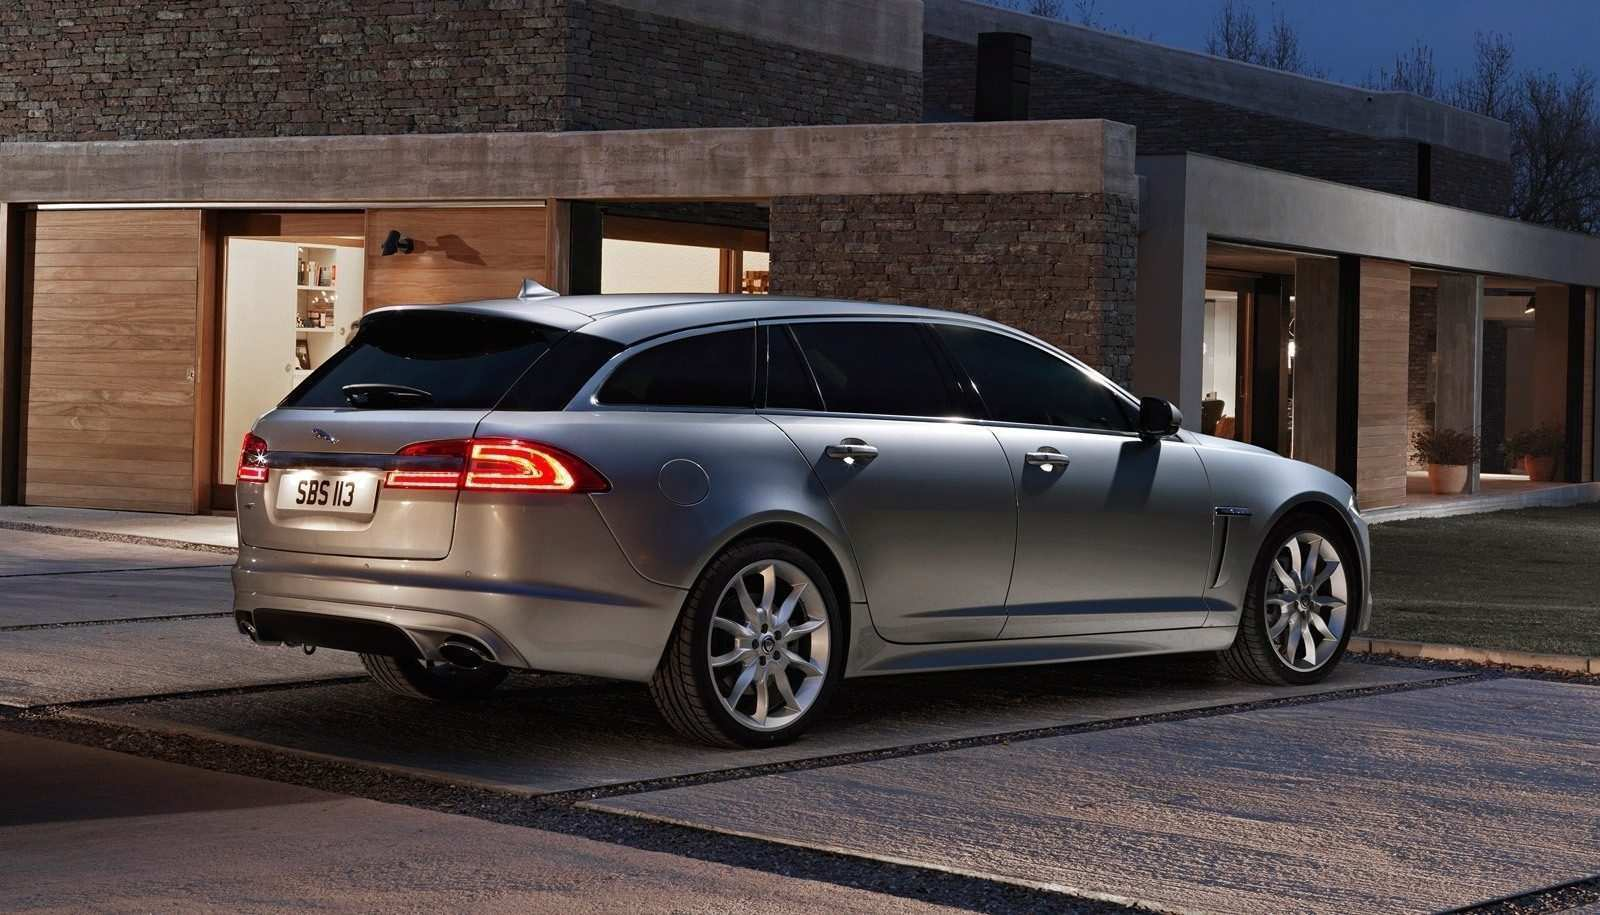 58 All New 2019 Jaguar Wagon Price And Release Date